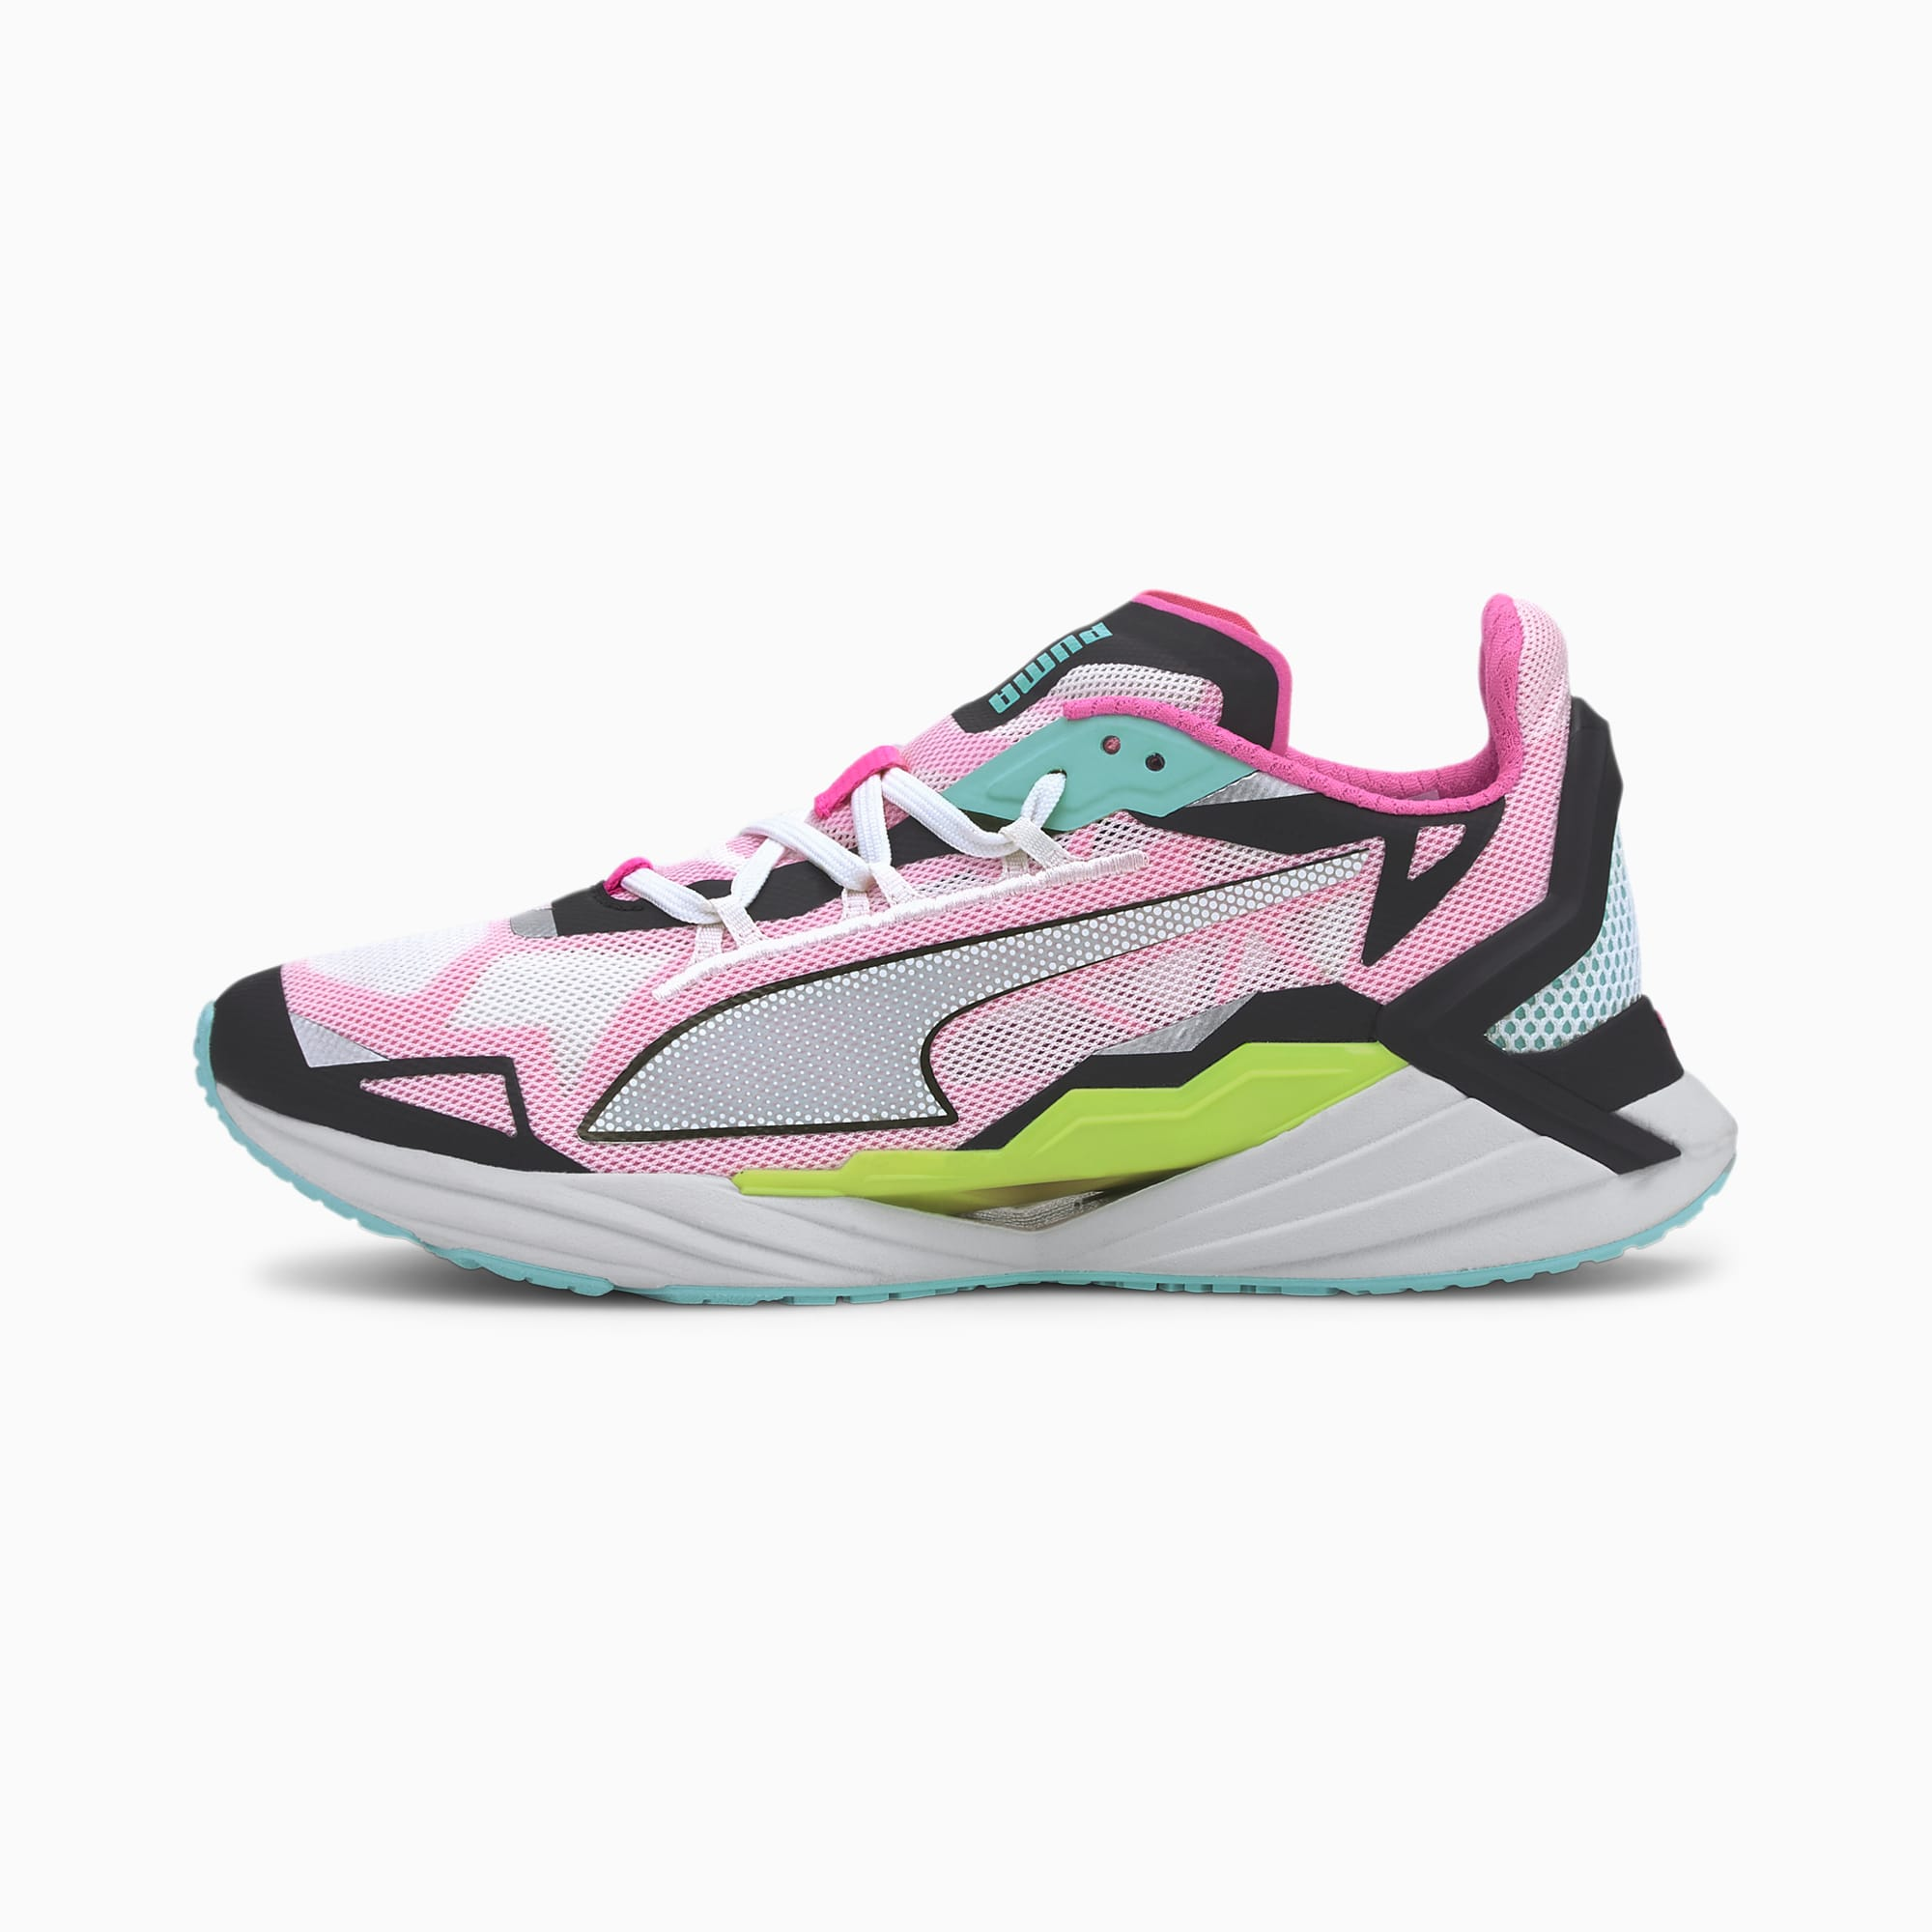 UltraRide Women's Running Shoes | PUMA US